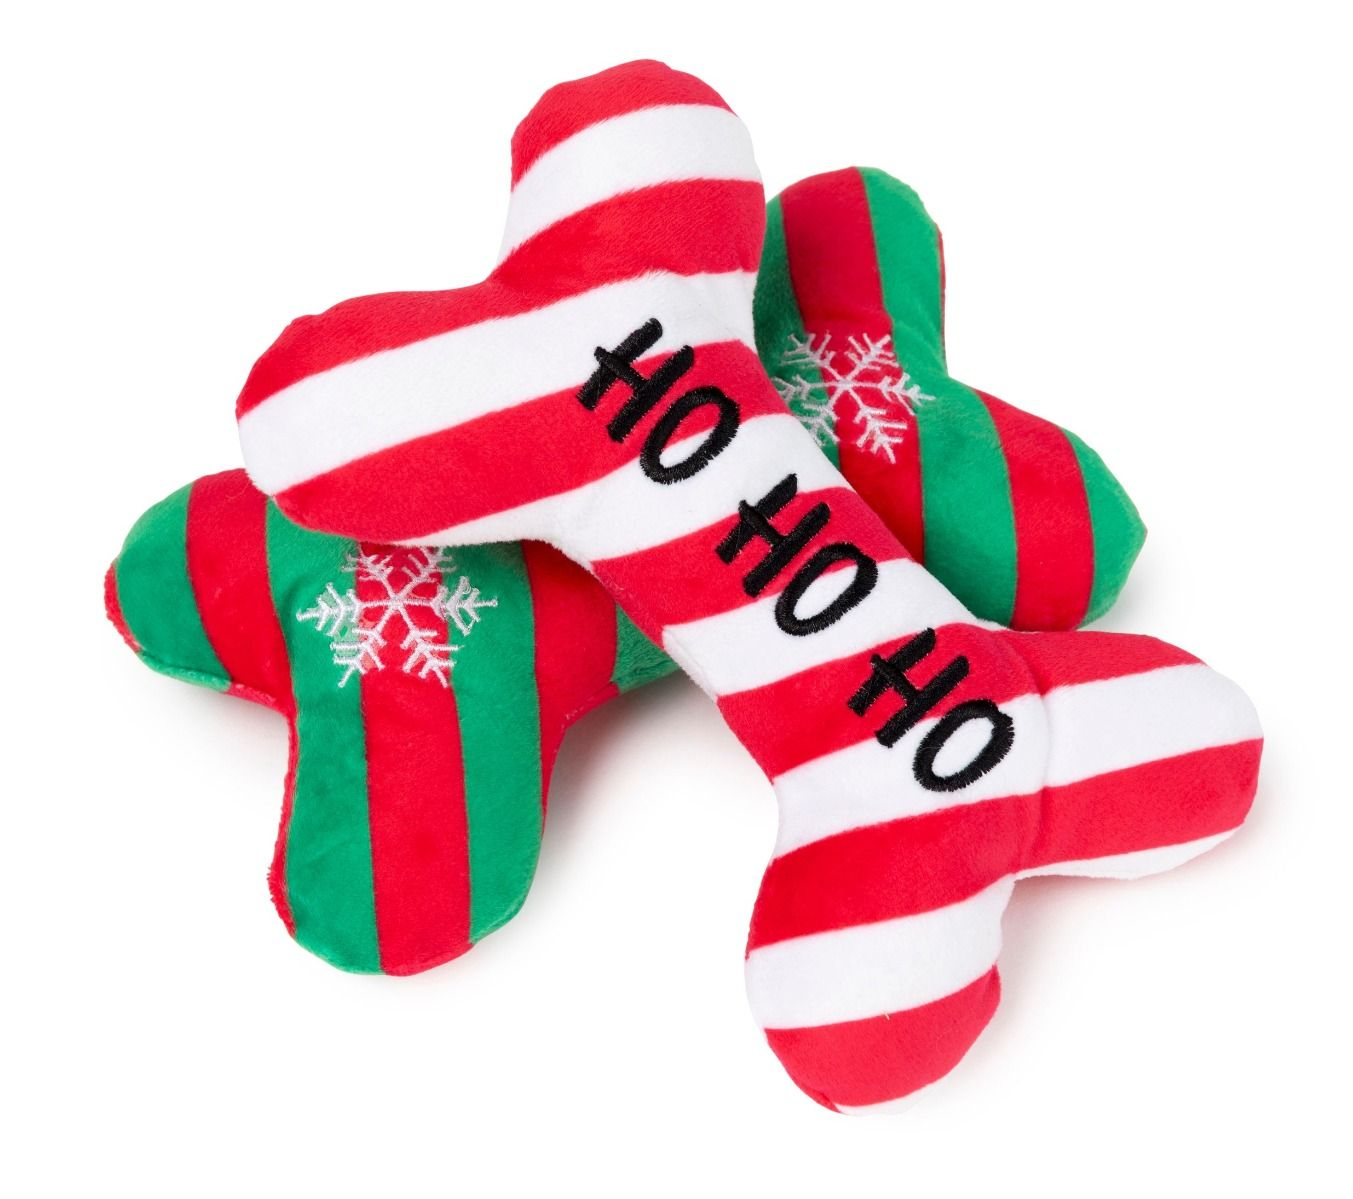 Ho HO HO & Snow Flake Bones - 2 Pack